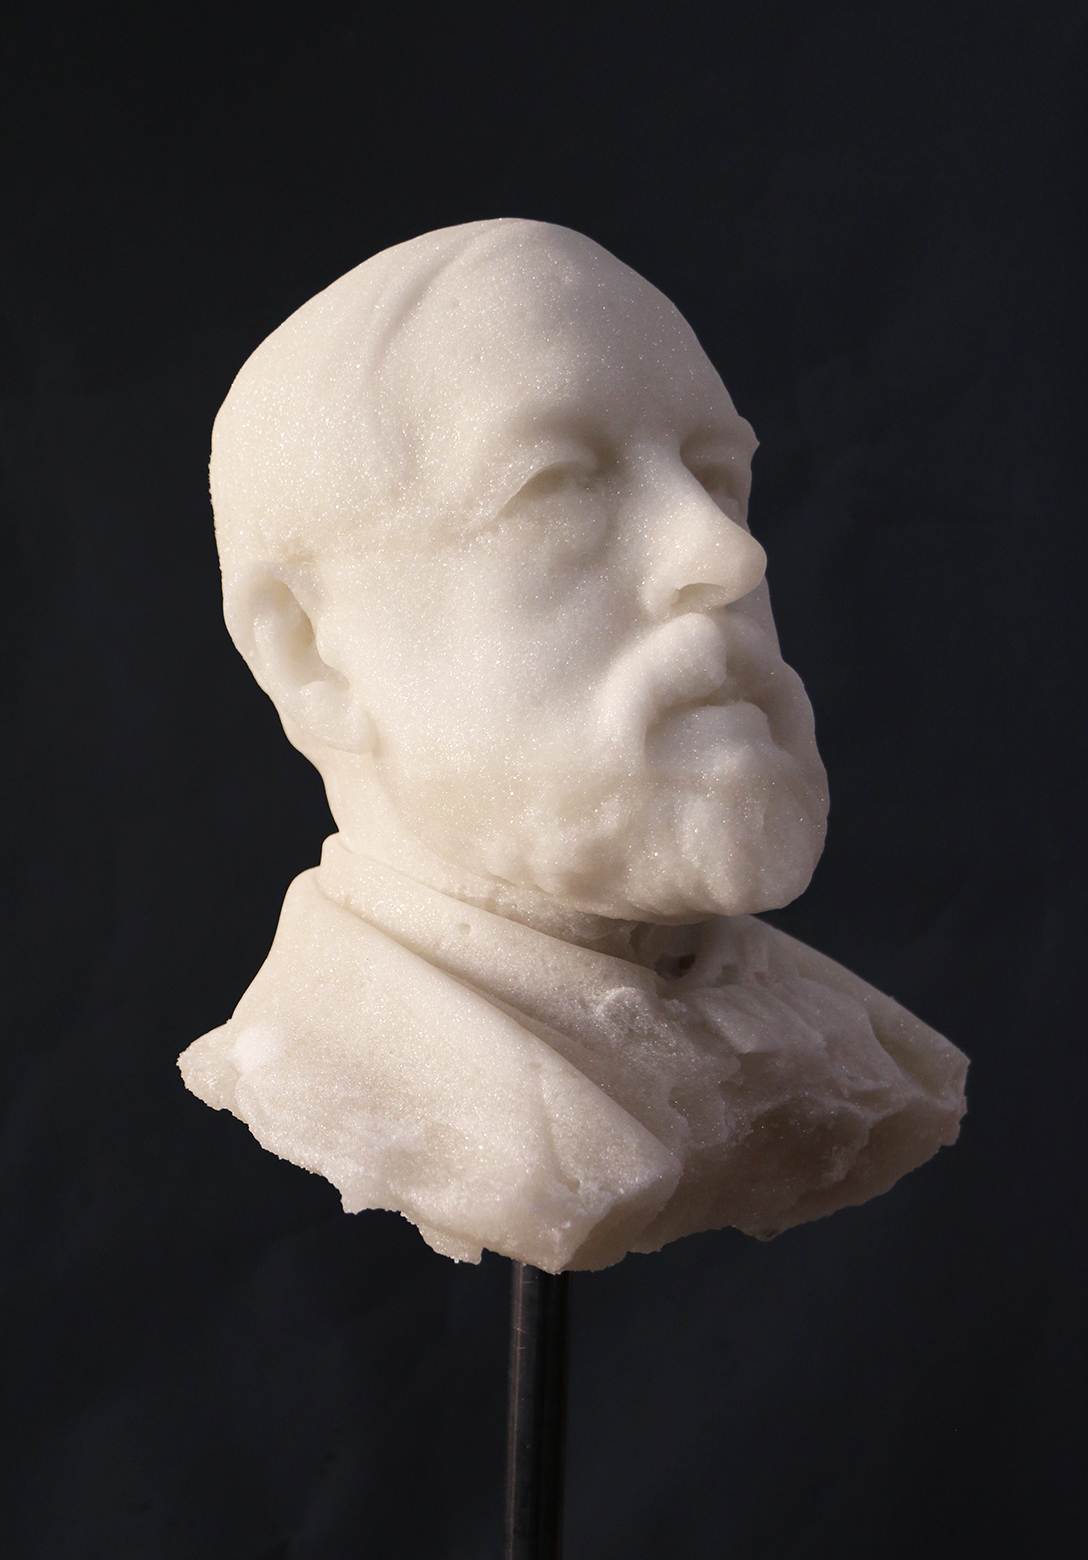 A bust made out of sugar of Henry Tate